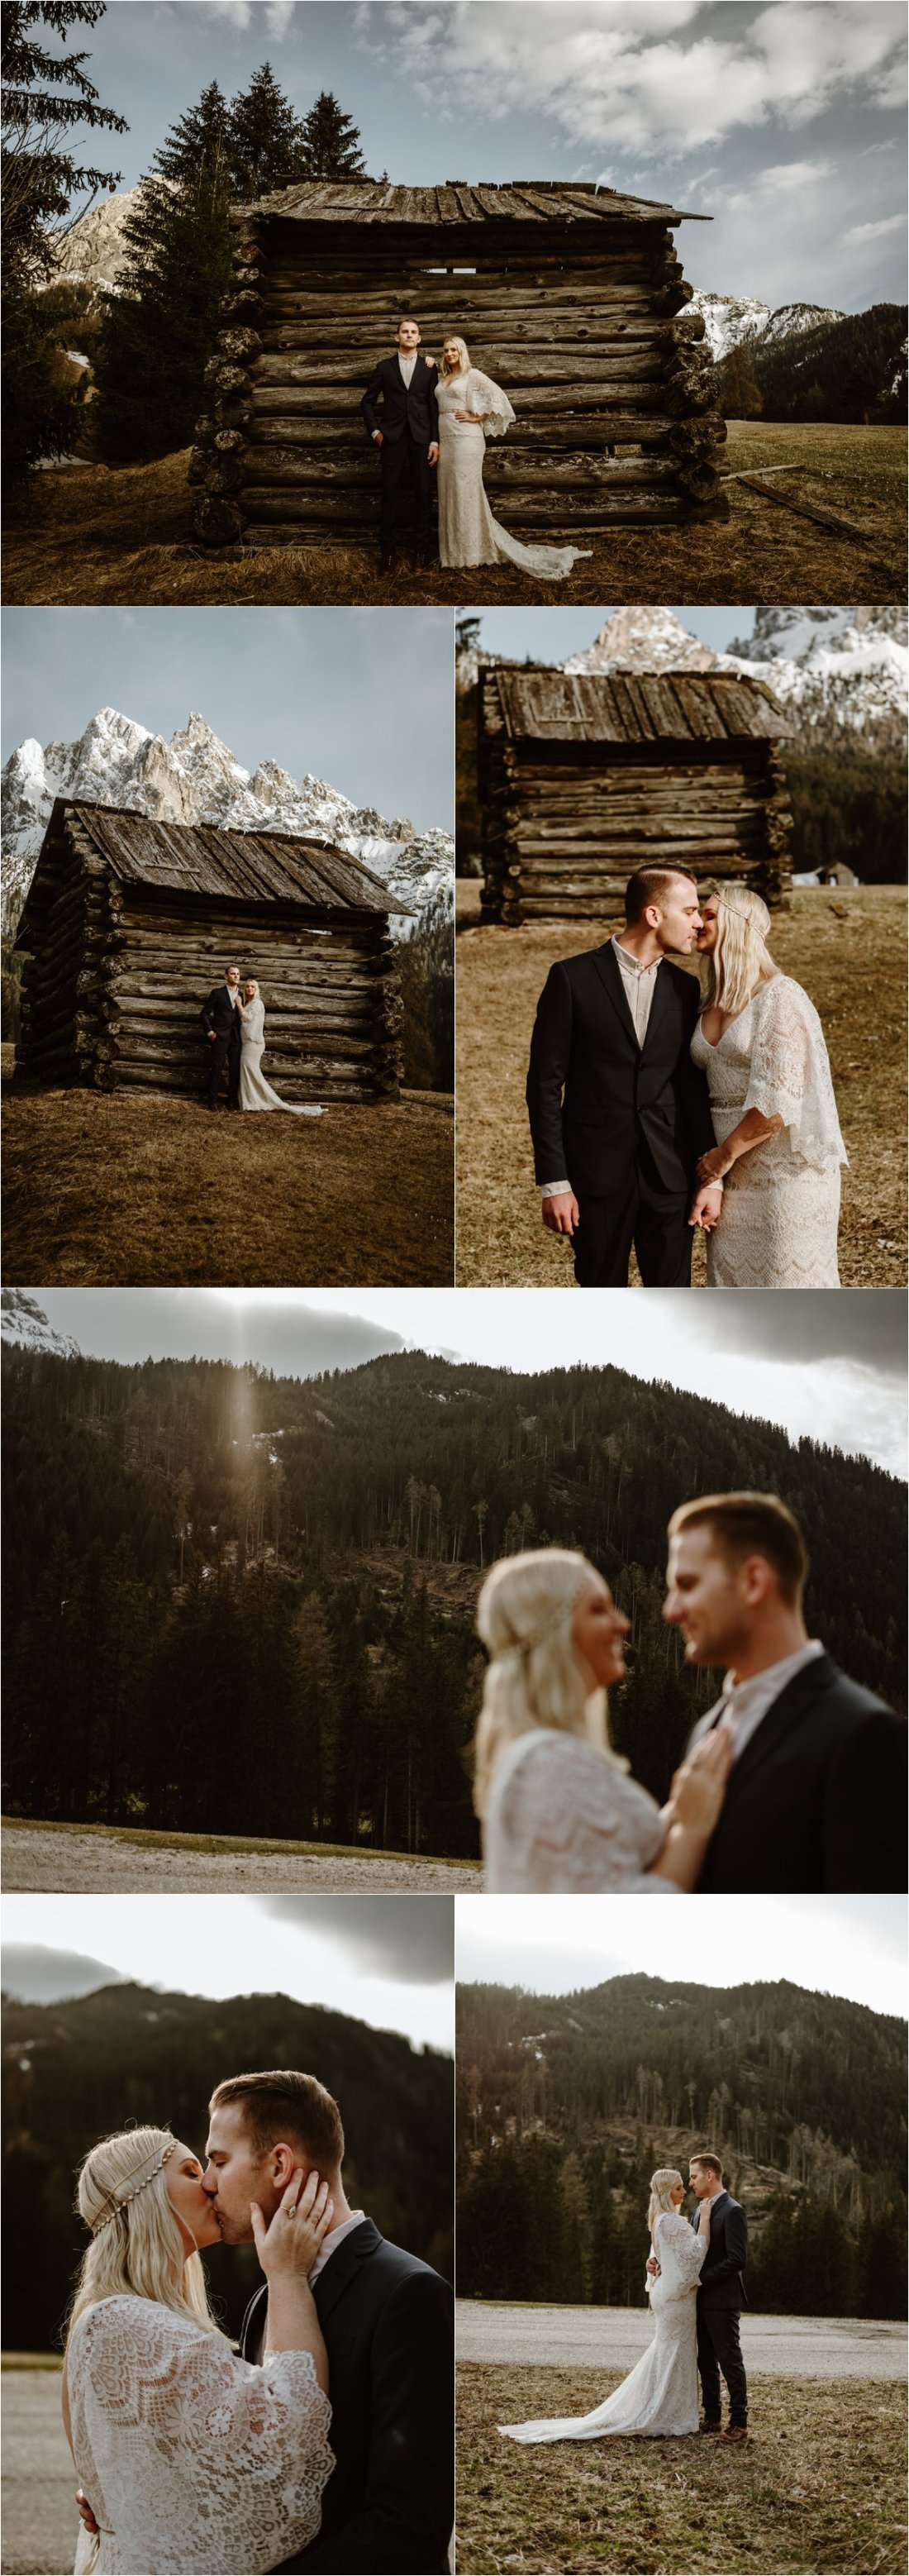 An old wooden farmers hut in the Italian Alps. Erika & Nathan spend their elopement day exploring in the Dolomites. Photos by Wild Connections Photography - Alps & Dolomites Elopement Photographer